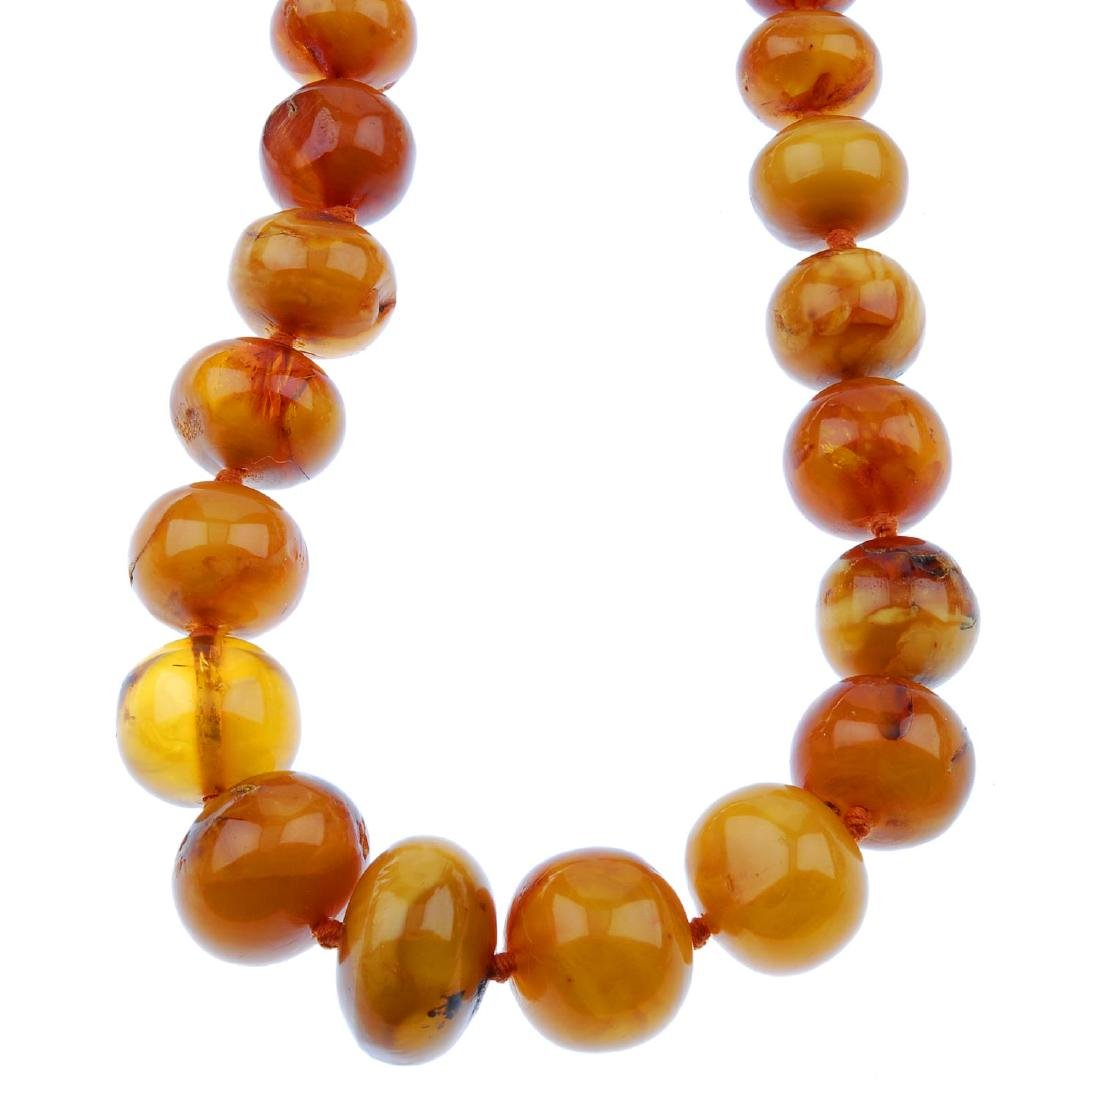 A natural amber bead necklace. Designed as bouton and